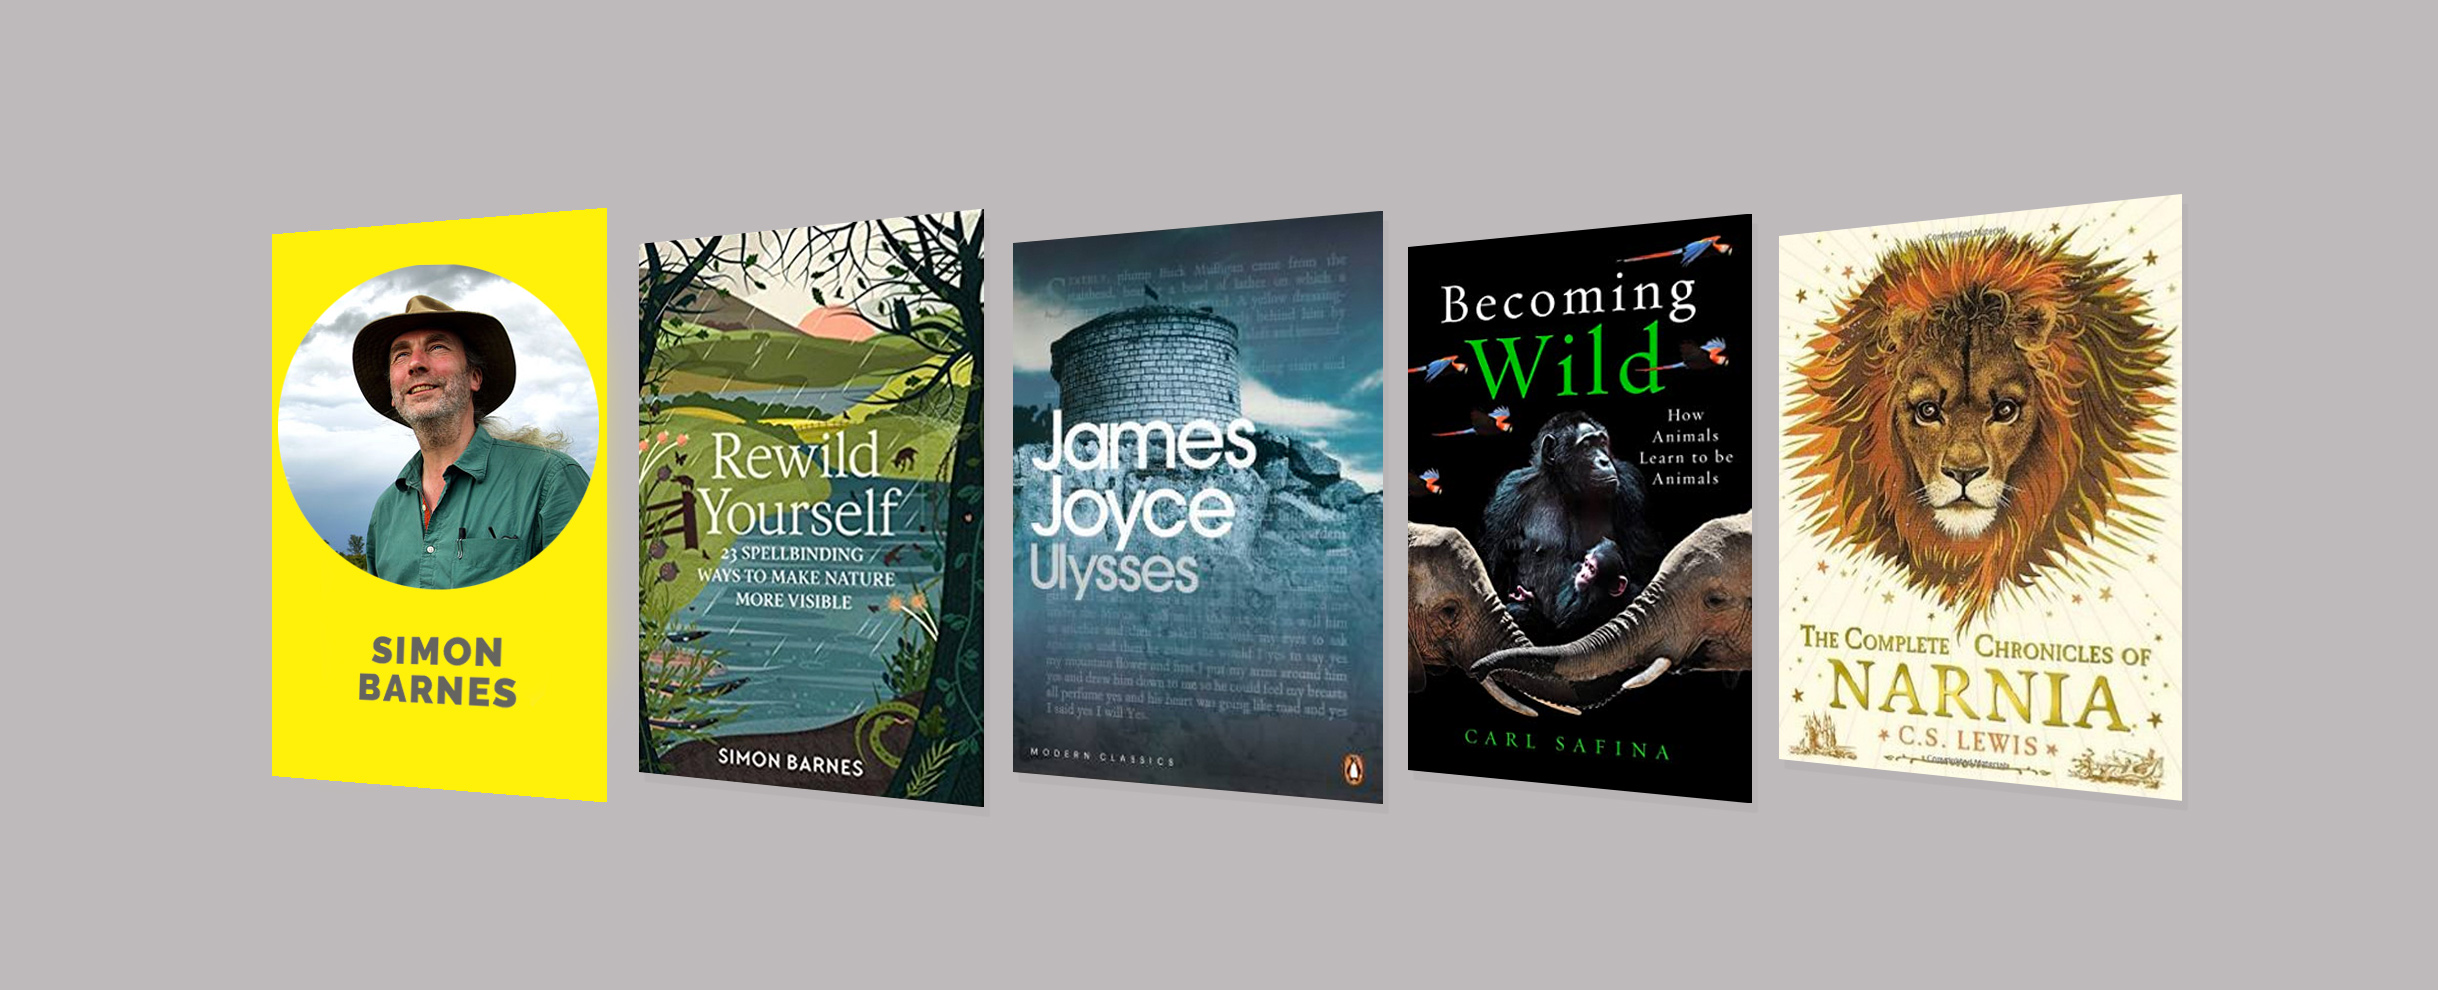 Interview with Simon Barnes, author of Rewild Yourself: 23 Spellbinding Ways To Make Nature More Visible